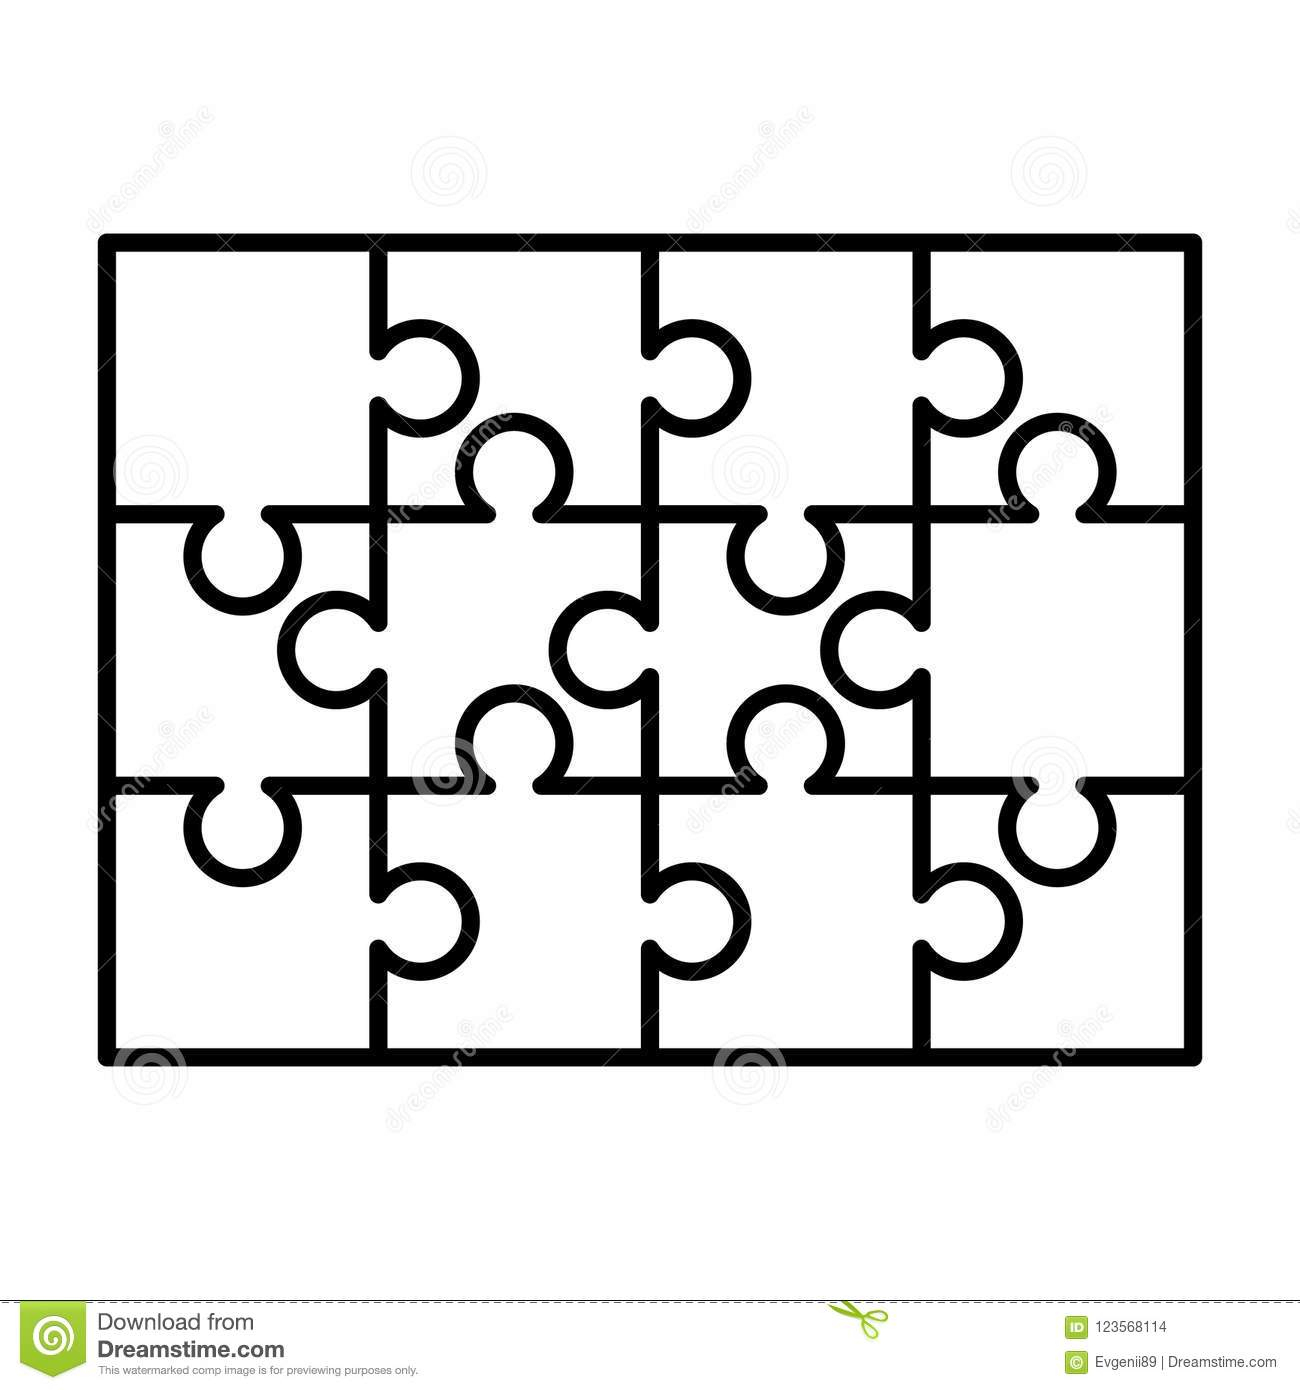 12 White Puzzles Pieces Arranged In A Rectangle Shape. Jigsaw Puzzle - Print Jigsaw Puzzle